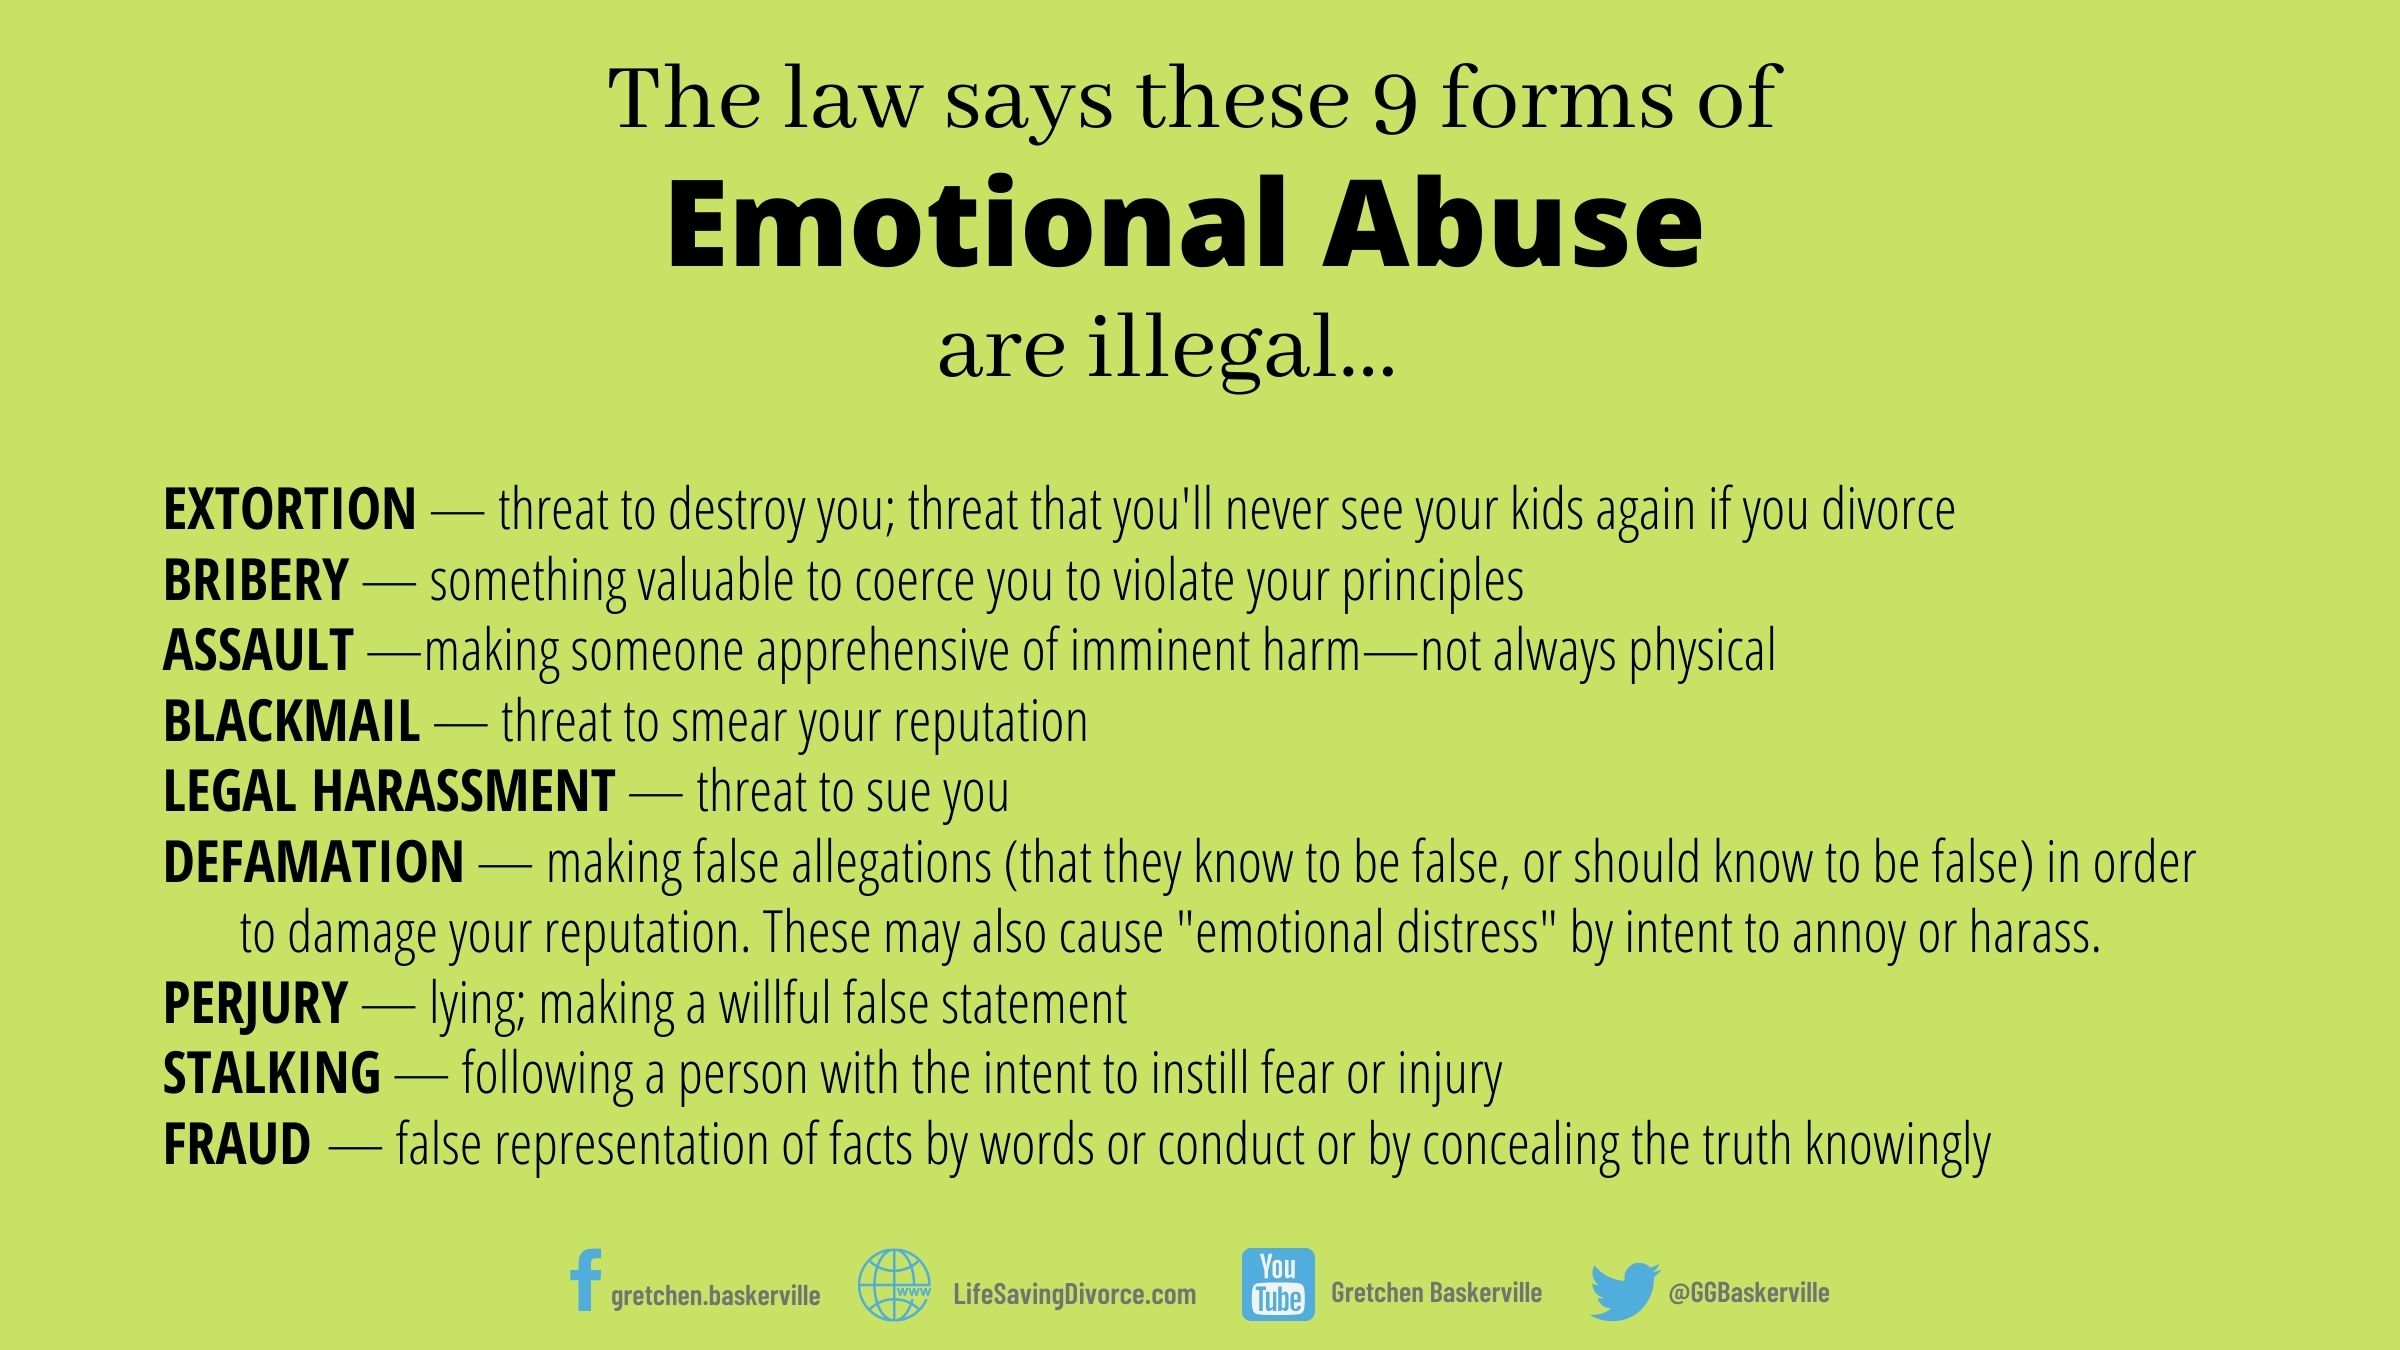 Here is an example of some legal phrases that pertain to emotional abuse.